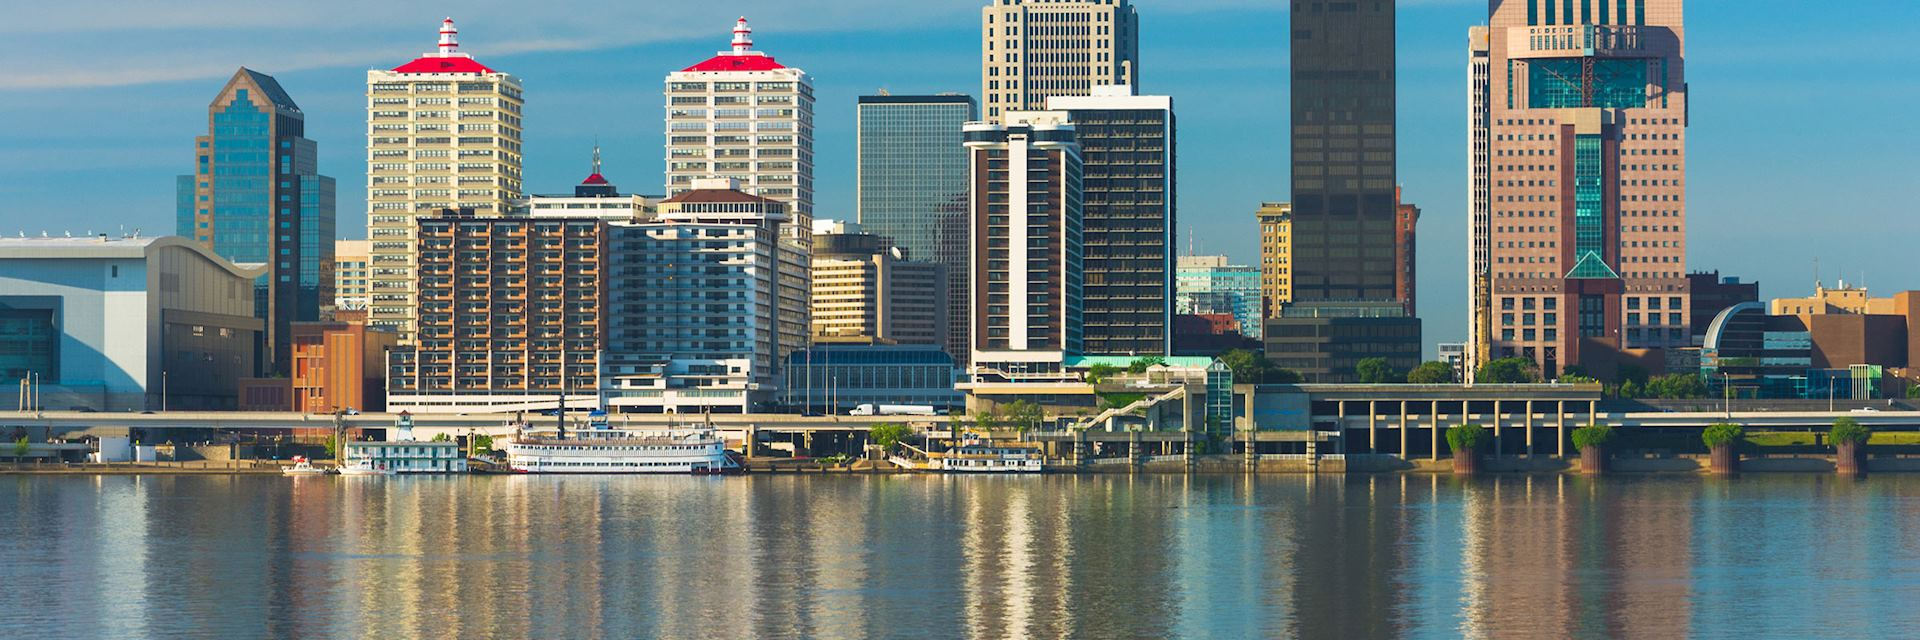 Louisville, Kentucky, the USA